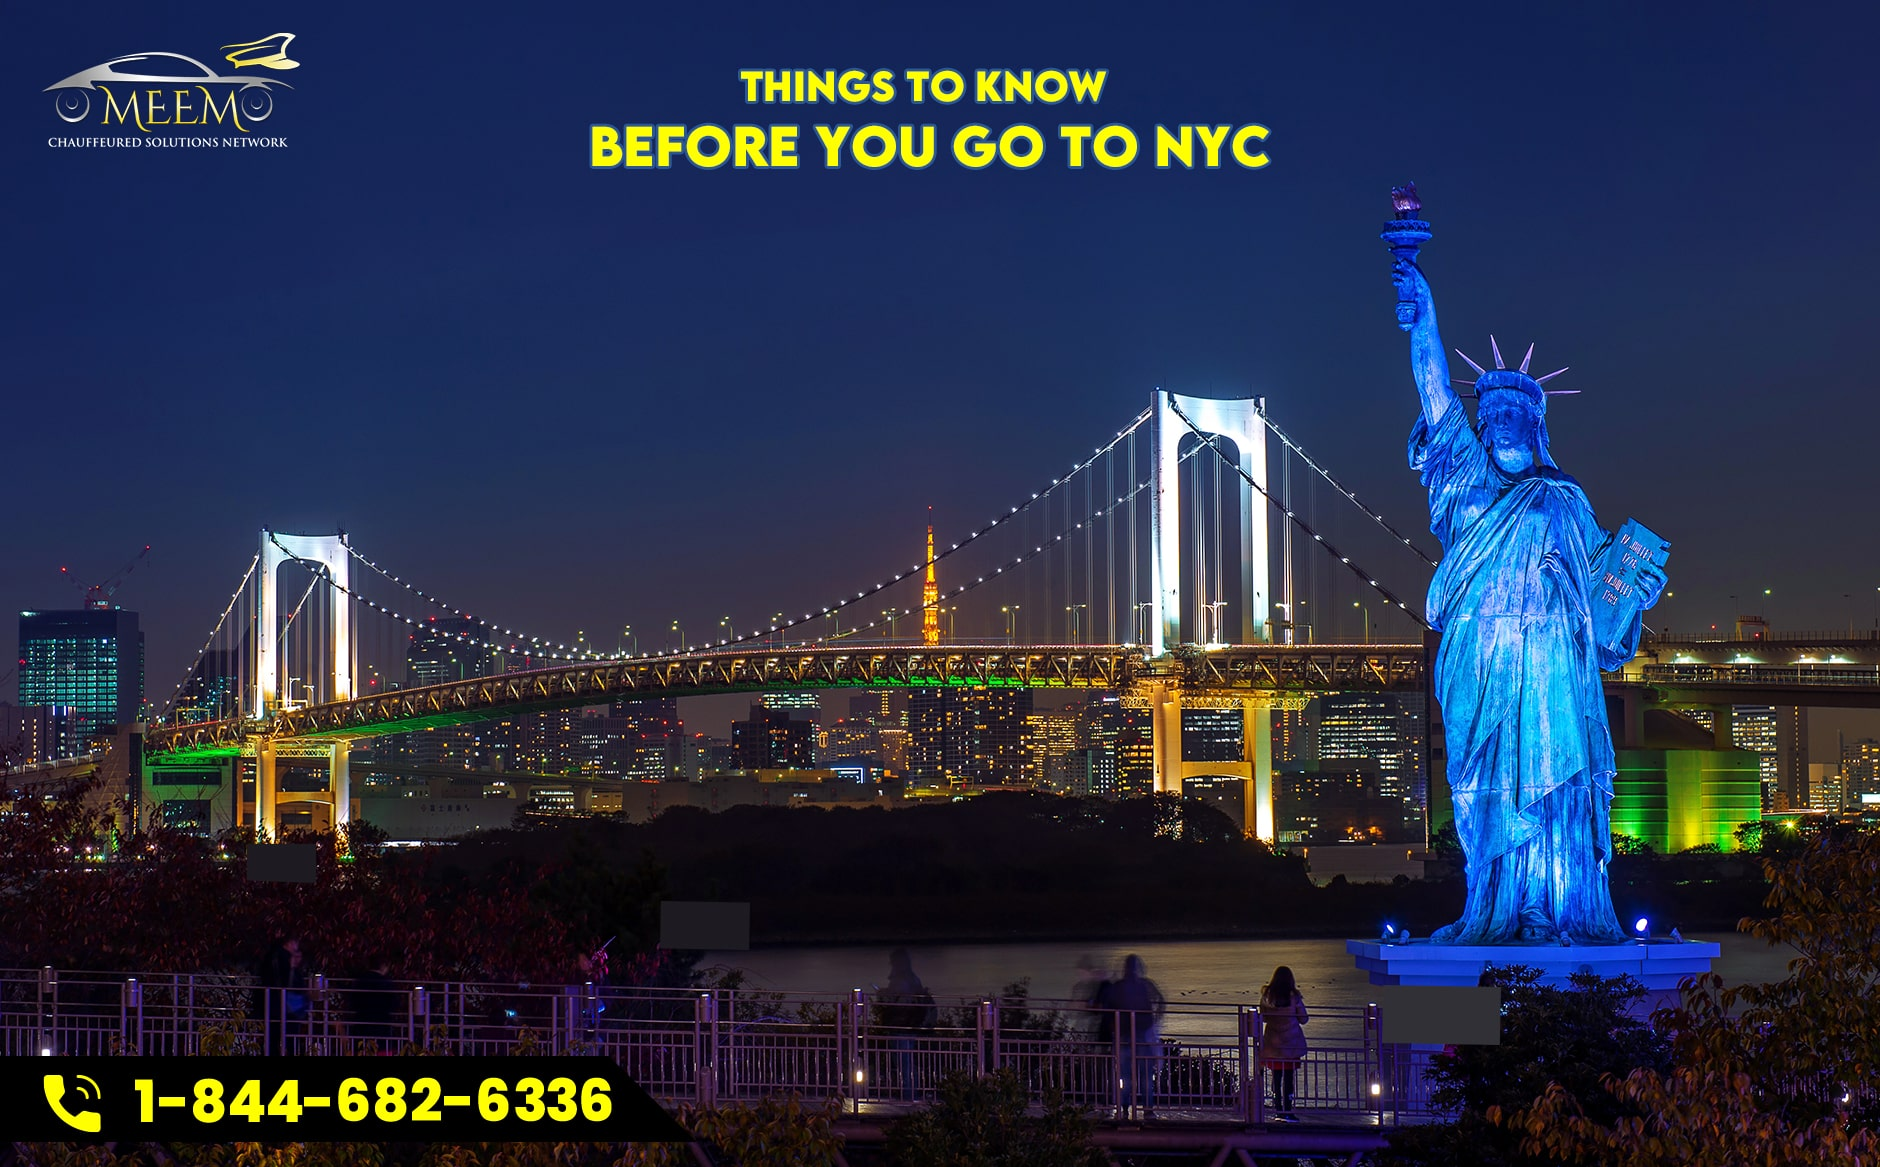 Things To Know Before You Go to NYC